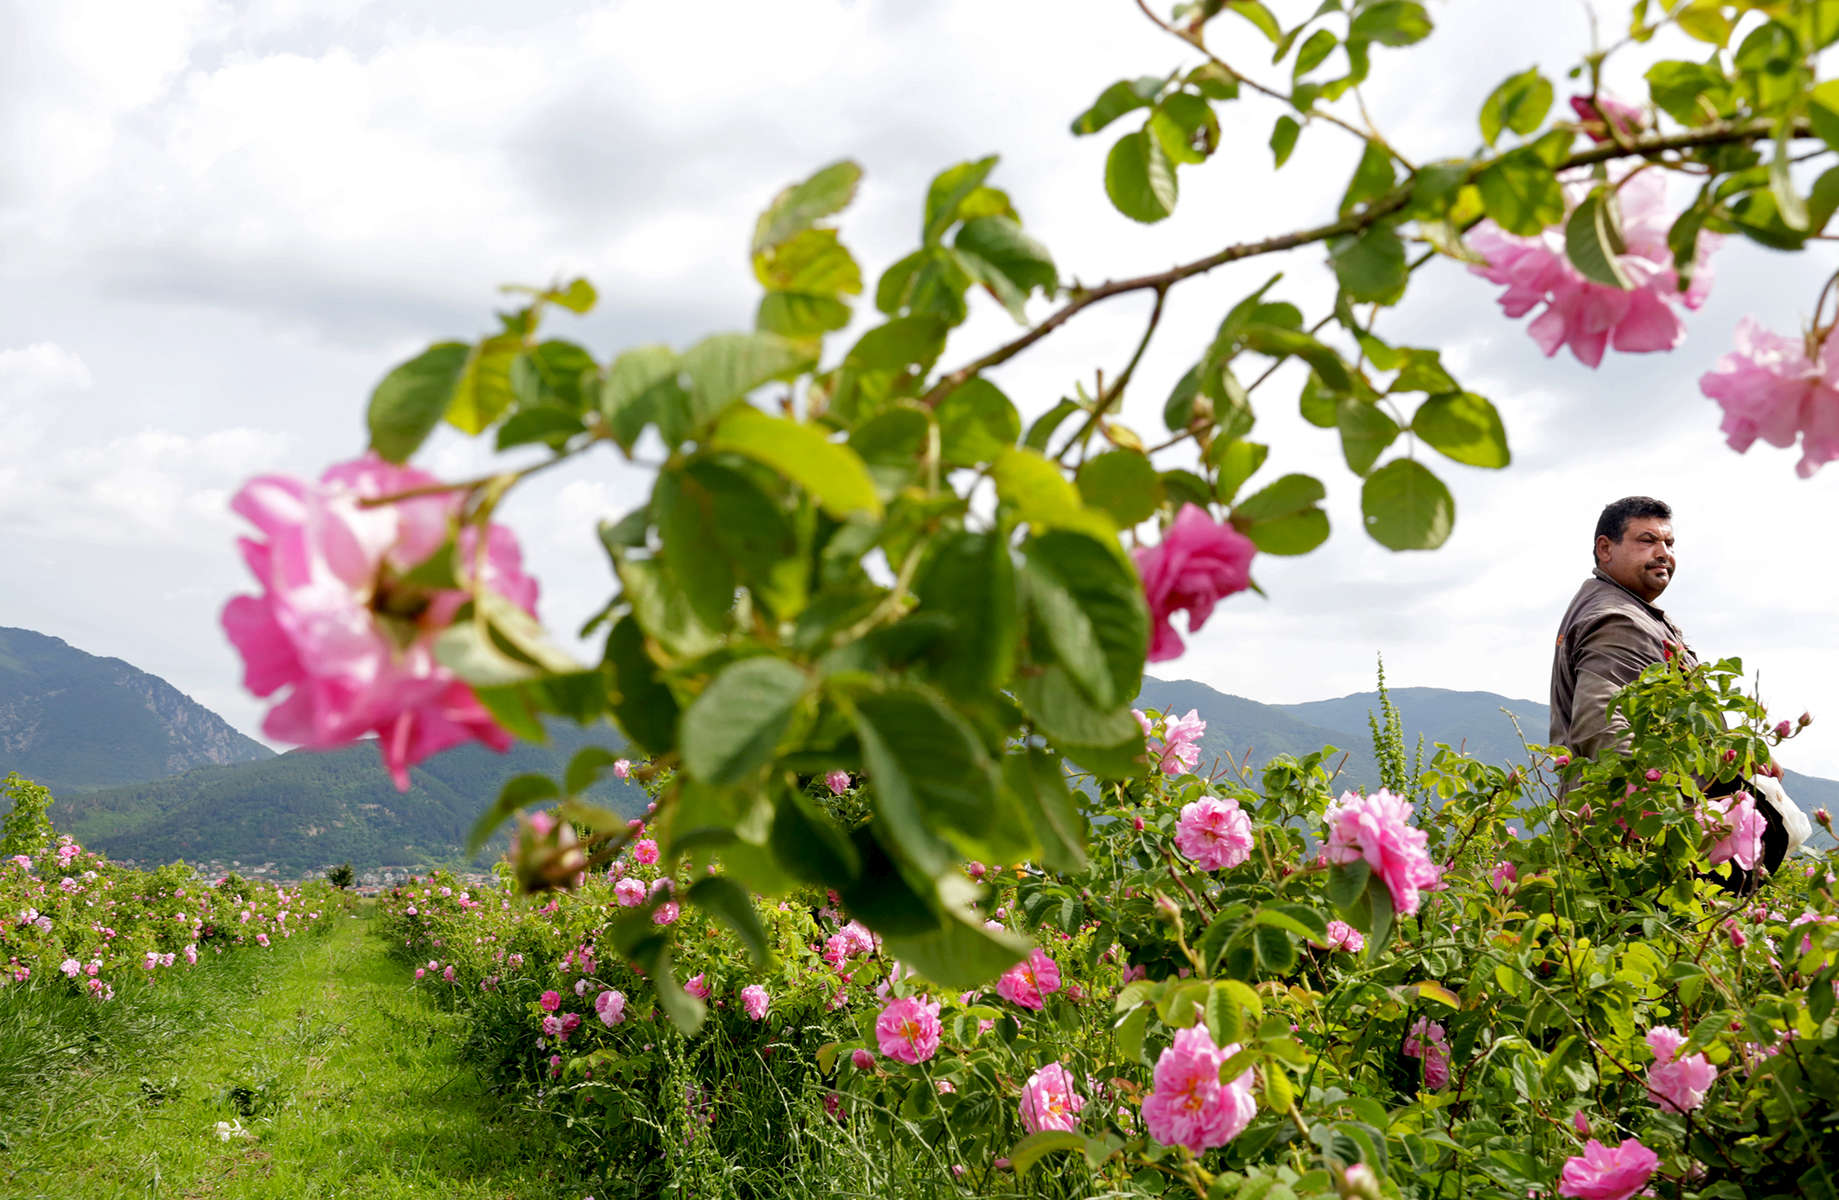 "Rasho Todorov, 40, picks roses in rose gardens in Maglizh, Bulgaria, on May 25, 2018. The most common oil-bearing rose of The Rose Valley is a pink-petaled rose of the botanic type Rosa Damascena Mill. In the Kazanlak region, Bulgarian scientists suspect that the climate conditions have formed a new type, a local population of a Kazanlak oil-bearing rose they call Rosa Kazanlika.One of many accounts traces Rosa Damascena's origins to Damask, Syria's capital (hence, some say, the name); another, to Iran; and Bulgaria's local rose population, to a Turkish merchant in the XVII century. Rosa Damascena no longer grows in the wild on its own - it must be cultivated - and it is said to be a hybrid of 2-3 rose species: Rosa Gallica, Rosa Moschata, with pollen from Rosa Fedtschenkoana. Three to five tons (or 3,000 - 5,000 kg) of rose petals are needed to make just 1 kg of rose oil, hence its nickname, ""liquid gold"" (whereas, 1 kg of rose petals makes 1 kg of rose water.) Roses like sandy, permeable, clay-free soil, and a mild, clear, sunny climate with enough humidity during their flowering period - just the climate of The Rose Valley. Its two rivers and the Balkan mountain range, as a shield from atmospheric volatility, provide these gentle conditions. In the Valley, it is usually sunny before noon, and rainy in the afternoon - with cool mornings and hotter afternoons. Temperature amplitudes during the flowering period provoke the production of rose oil, which is formed as a defense reaction of the plant. The rose flower is very sensitive, and its oil resides in the top layers of the flower, so it evaporates easily with rising temperatures. Cold dew drops in the morning hinder the evaporation of oil, the moist air preserving both the plant's moisture, turgor and oil content, which is why farmers usually pick the flowers between sunrise and 11:00 a.m.Photo by: Yana Paskova for National Geographic Traveler"